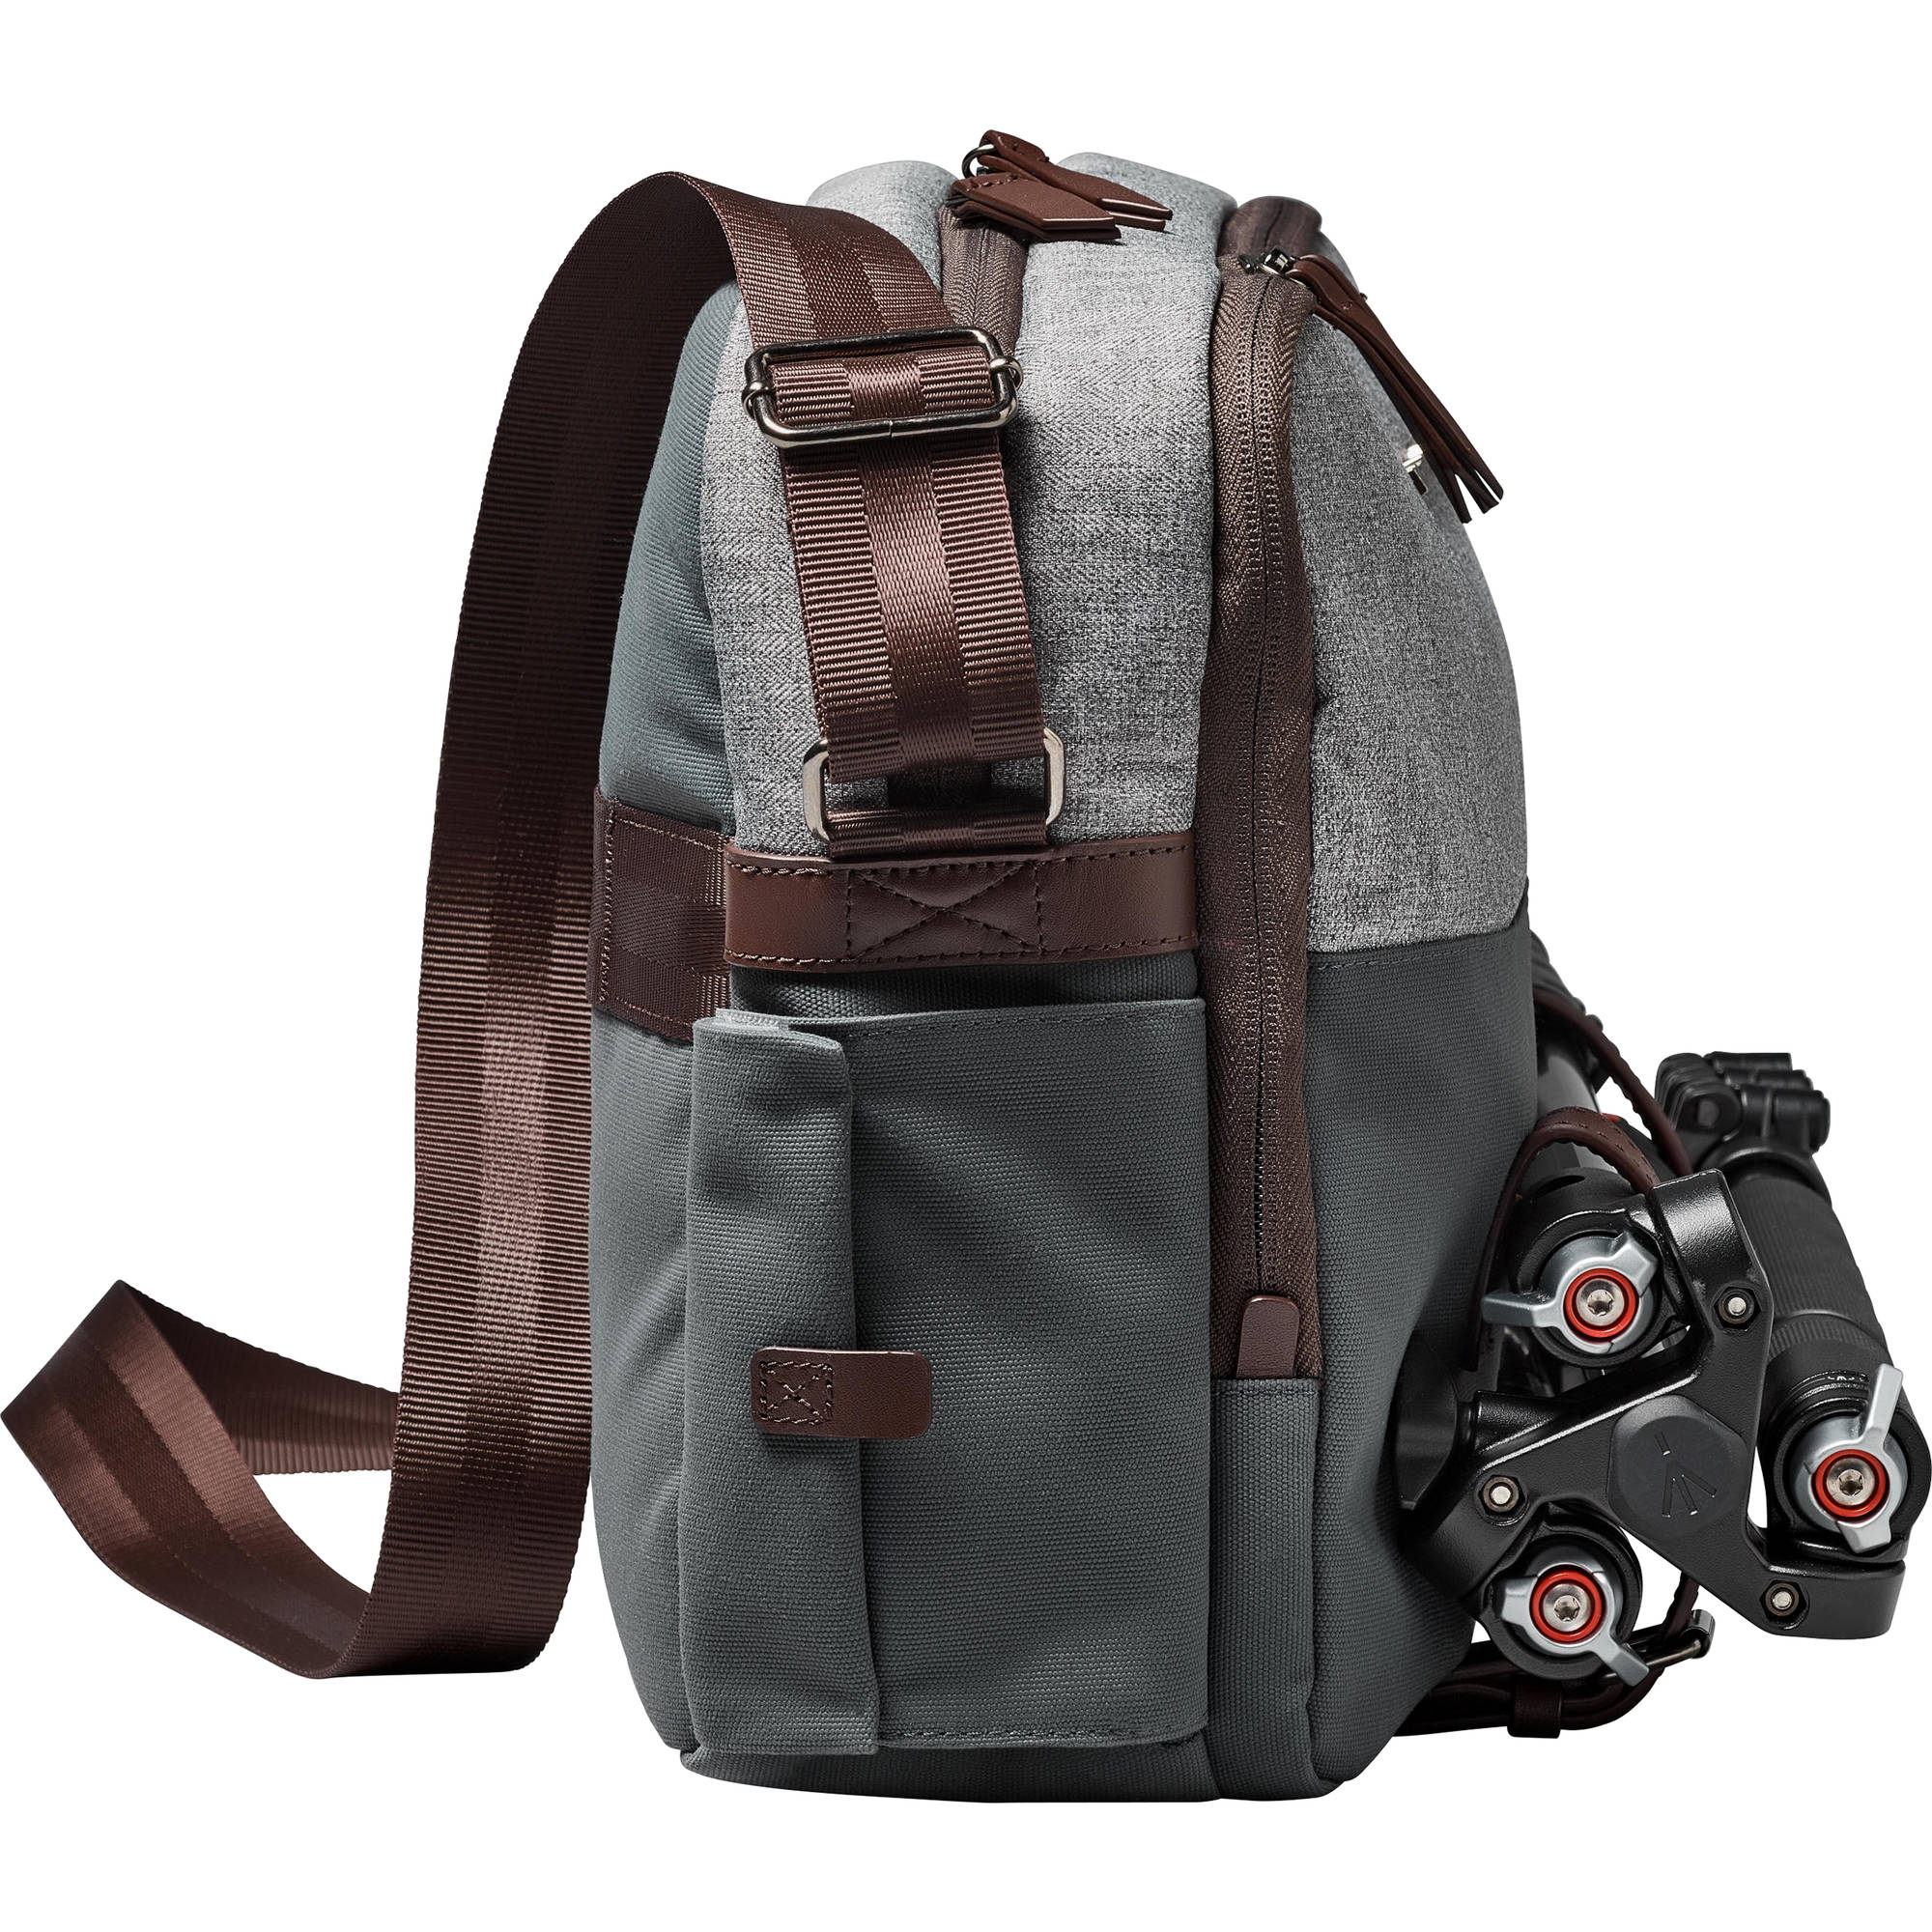 Manfrotto Windsor Camera Reporter Bag for DSLR (Gray)